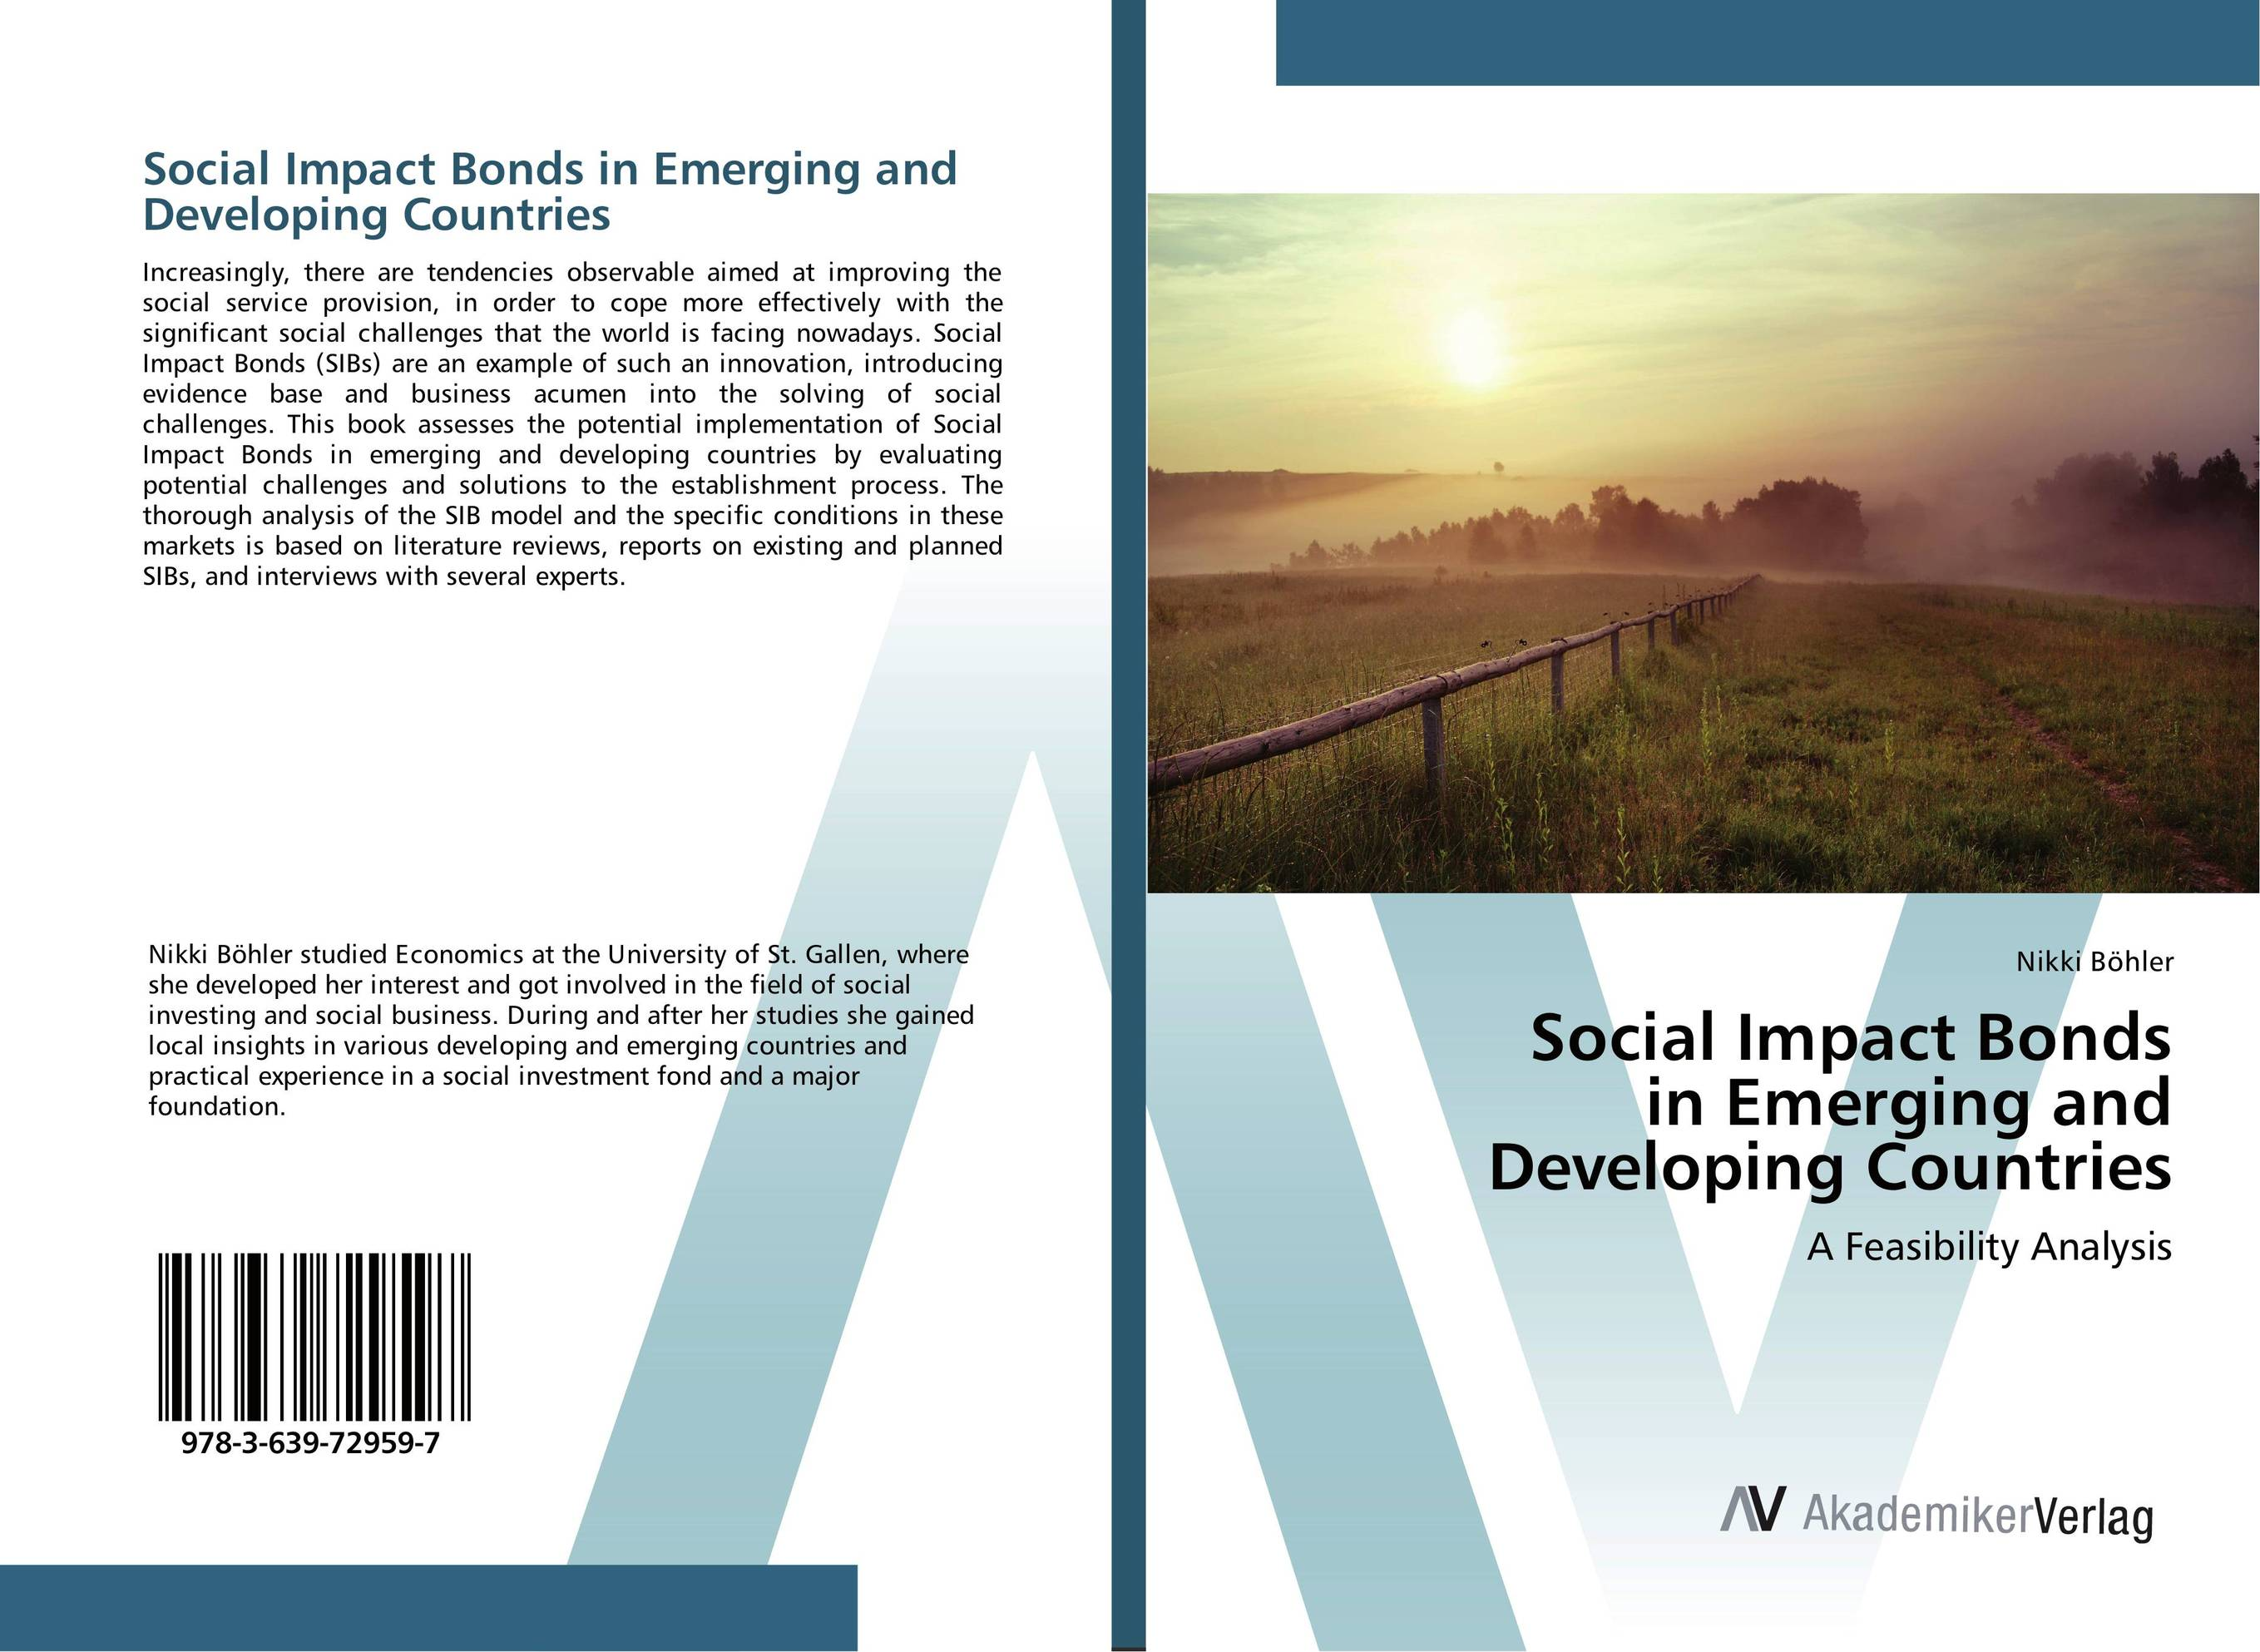 Social Impact Bonds in Emerging and Developing Countries marc lane j the mission driven venture business solutions to the world s most vexing social problems